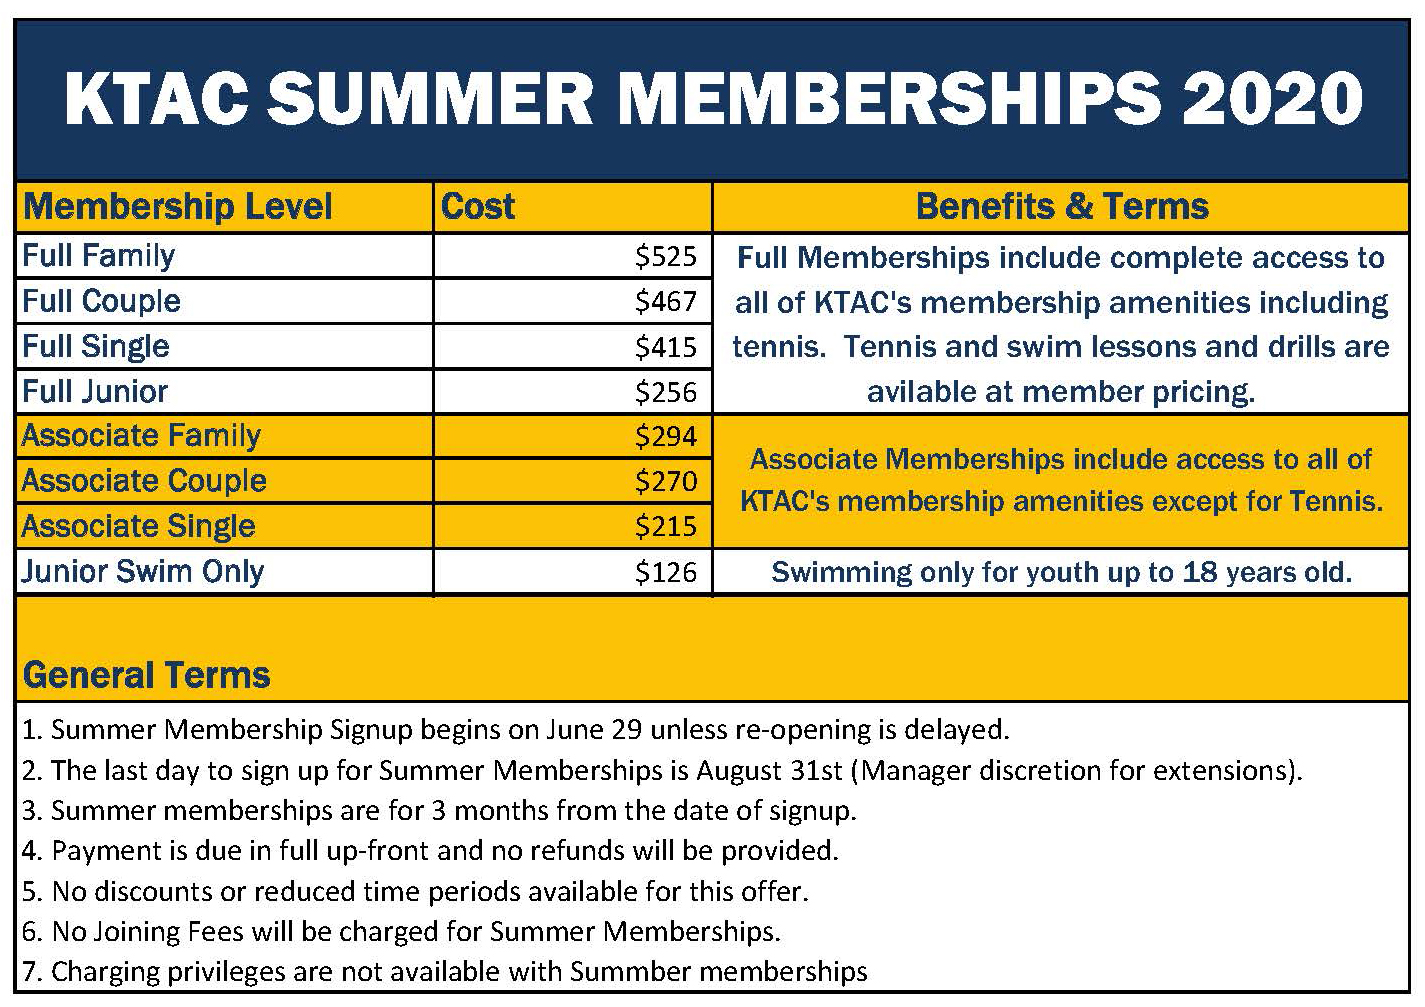 KTAC Summer Memberships